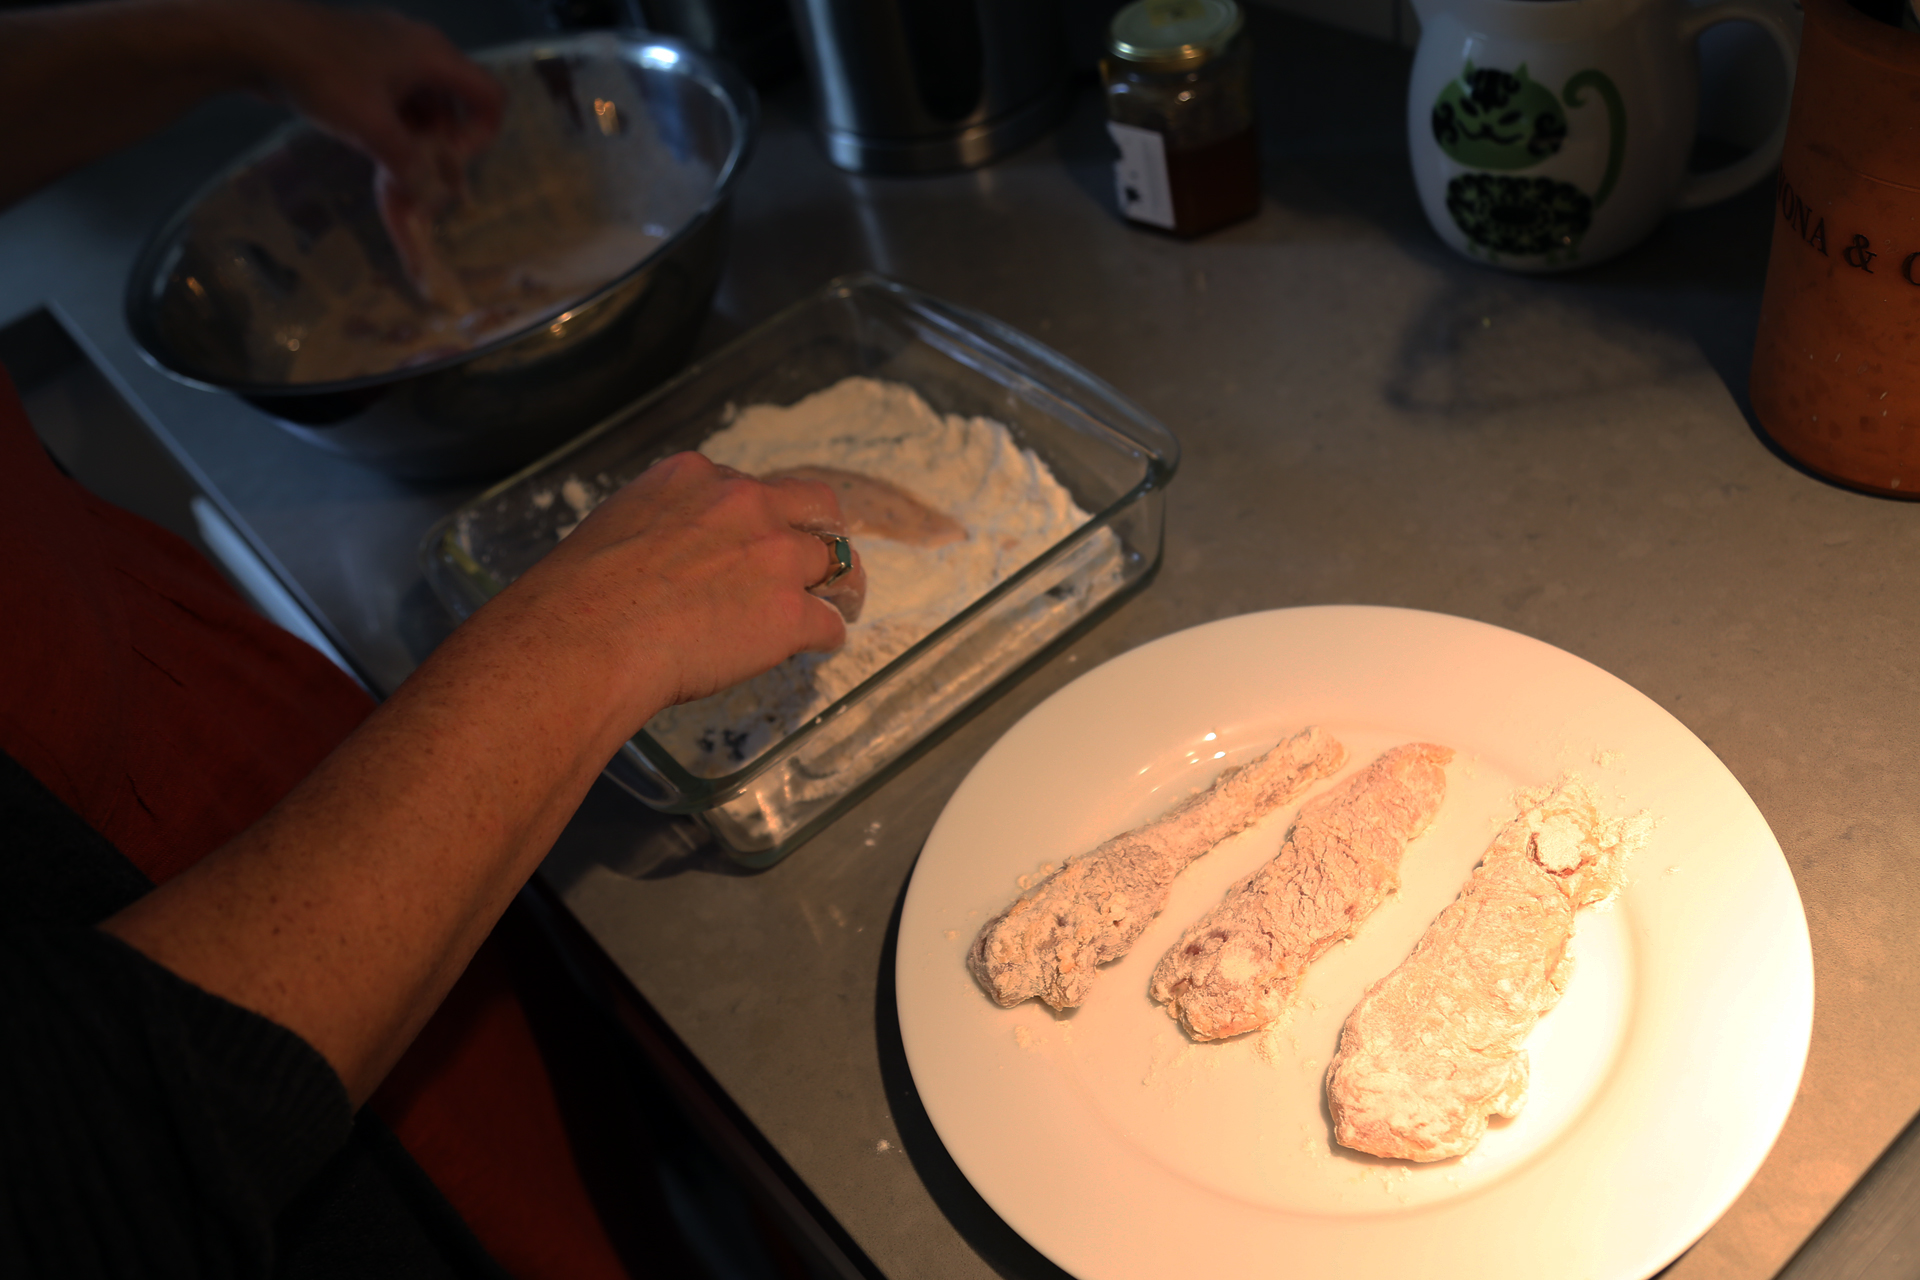 Pick up a chicken strip and let the buttermilk mixture drip off (but leave some of it coating the chicken). Dredge each strip in the flour mixture, coating it evenly, then set it aside on a plate.